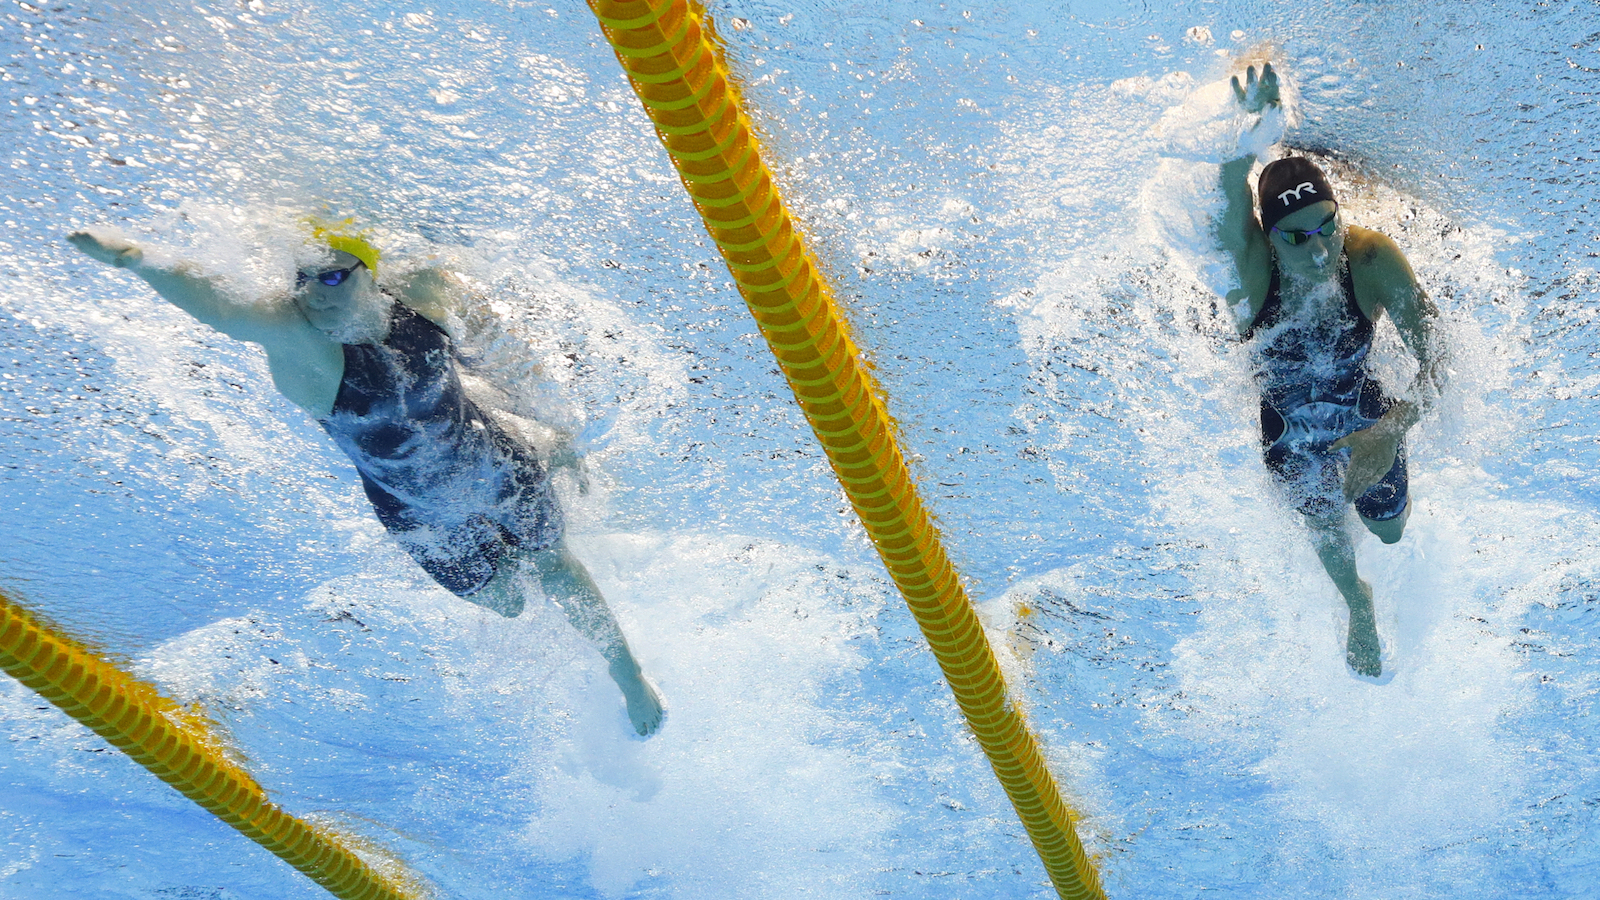 Denmark's Pernille Blume, right, and Australia's Cate Campbell compete in the women's 50-meter final during the swimming competitions at the 2016 Summer Olympics, Saturday, Aug. 13, 2016, in Rio de Janeiro, Brazil. (AP Photo/Jin-man Lee)